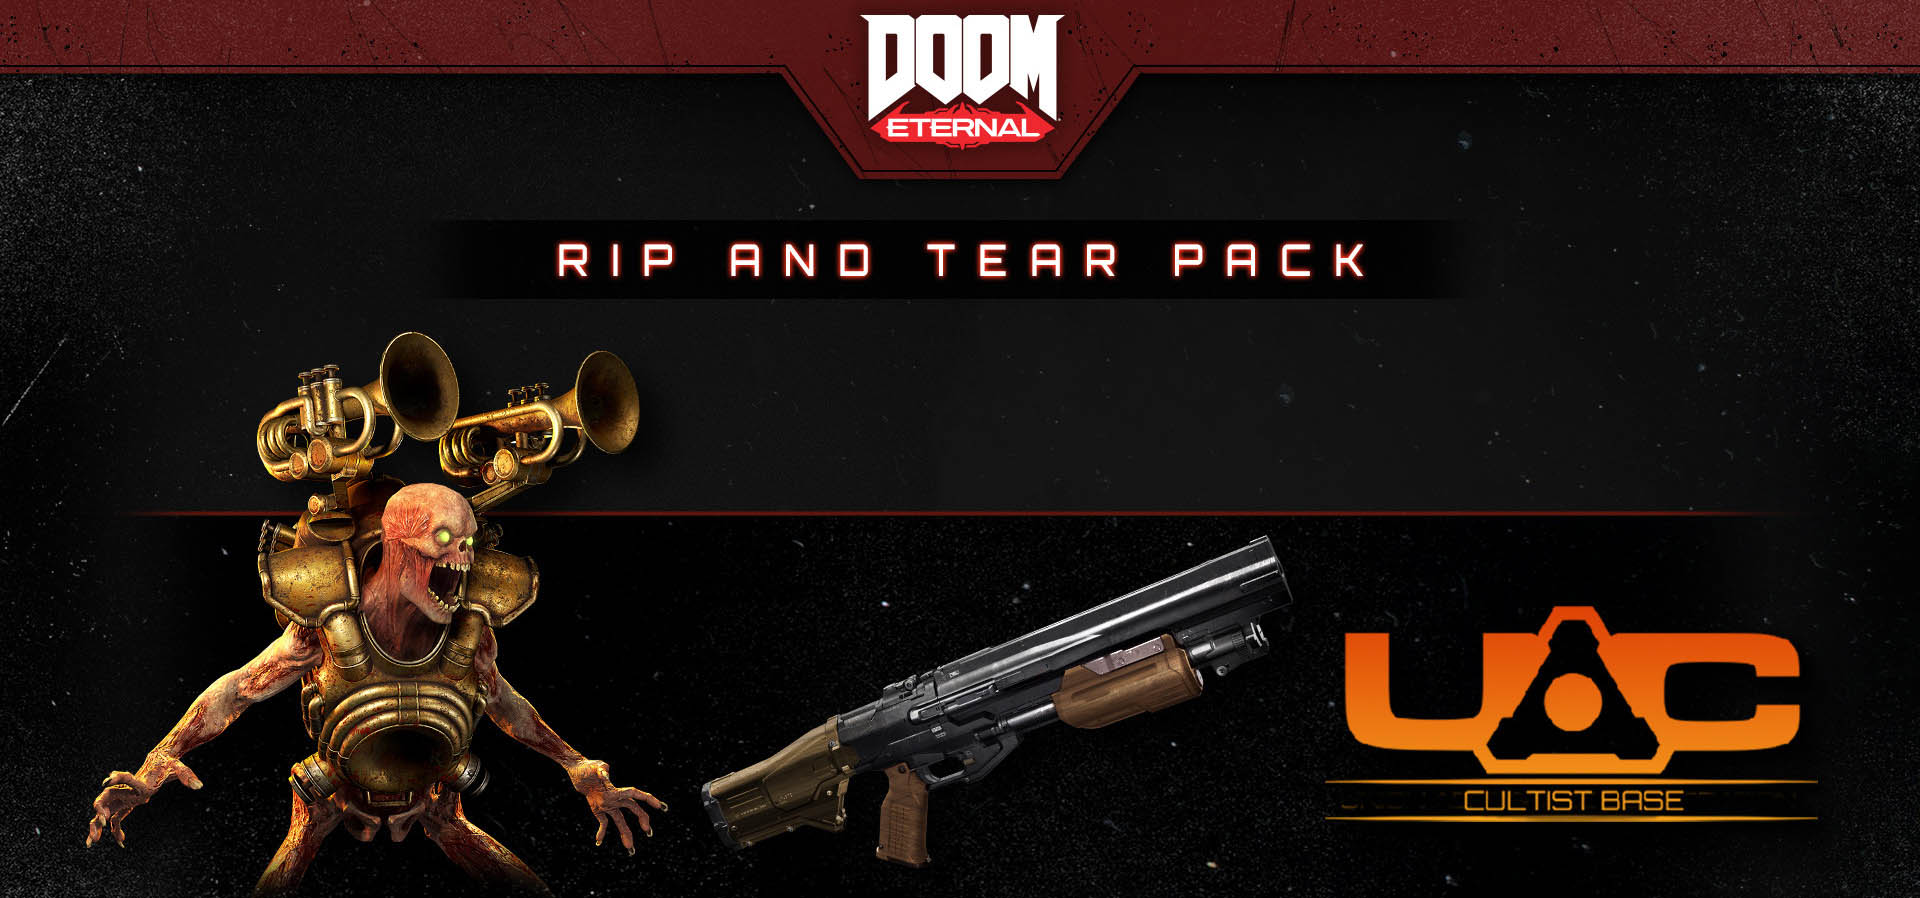 DOOM Eternal Rip and Tear Pack Nintendo Switch